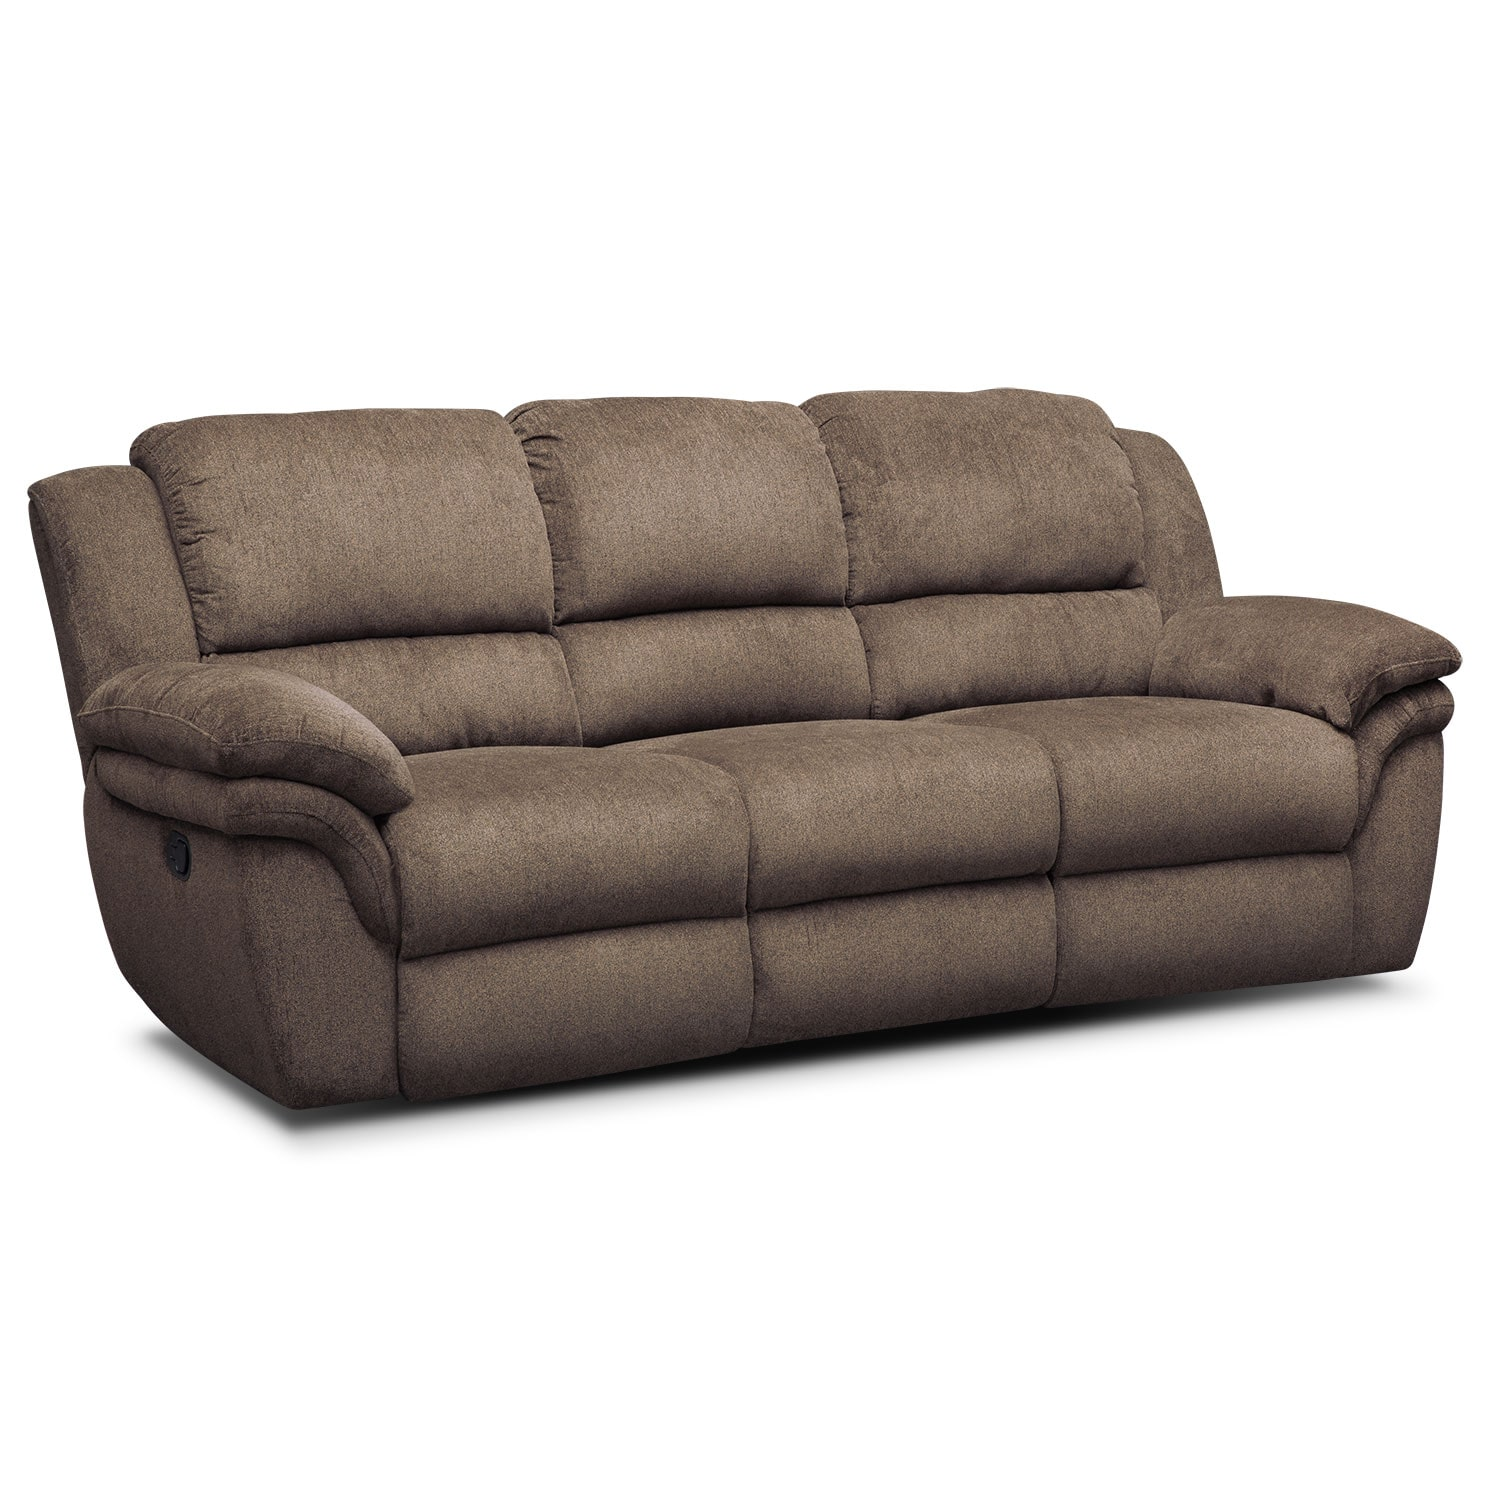 Aldo manual dual reclining sofa loveseat and recliner set for Couch und sofa